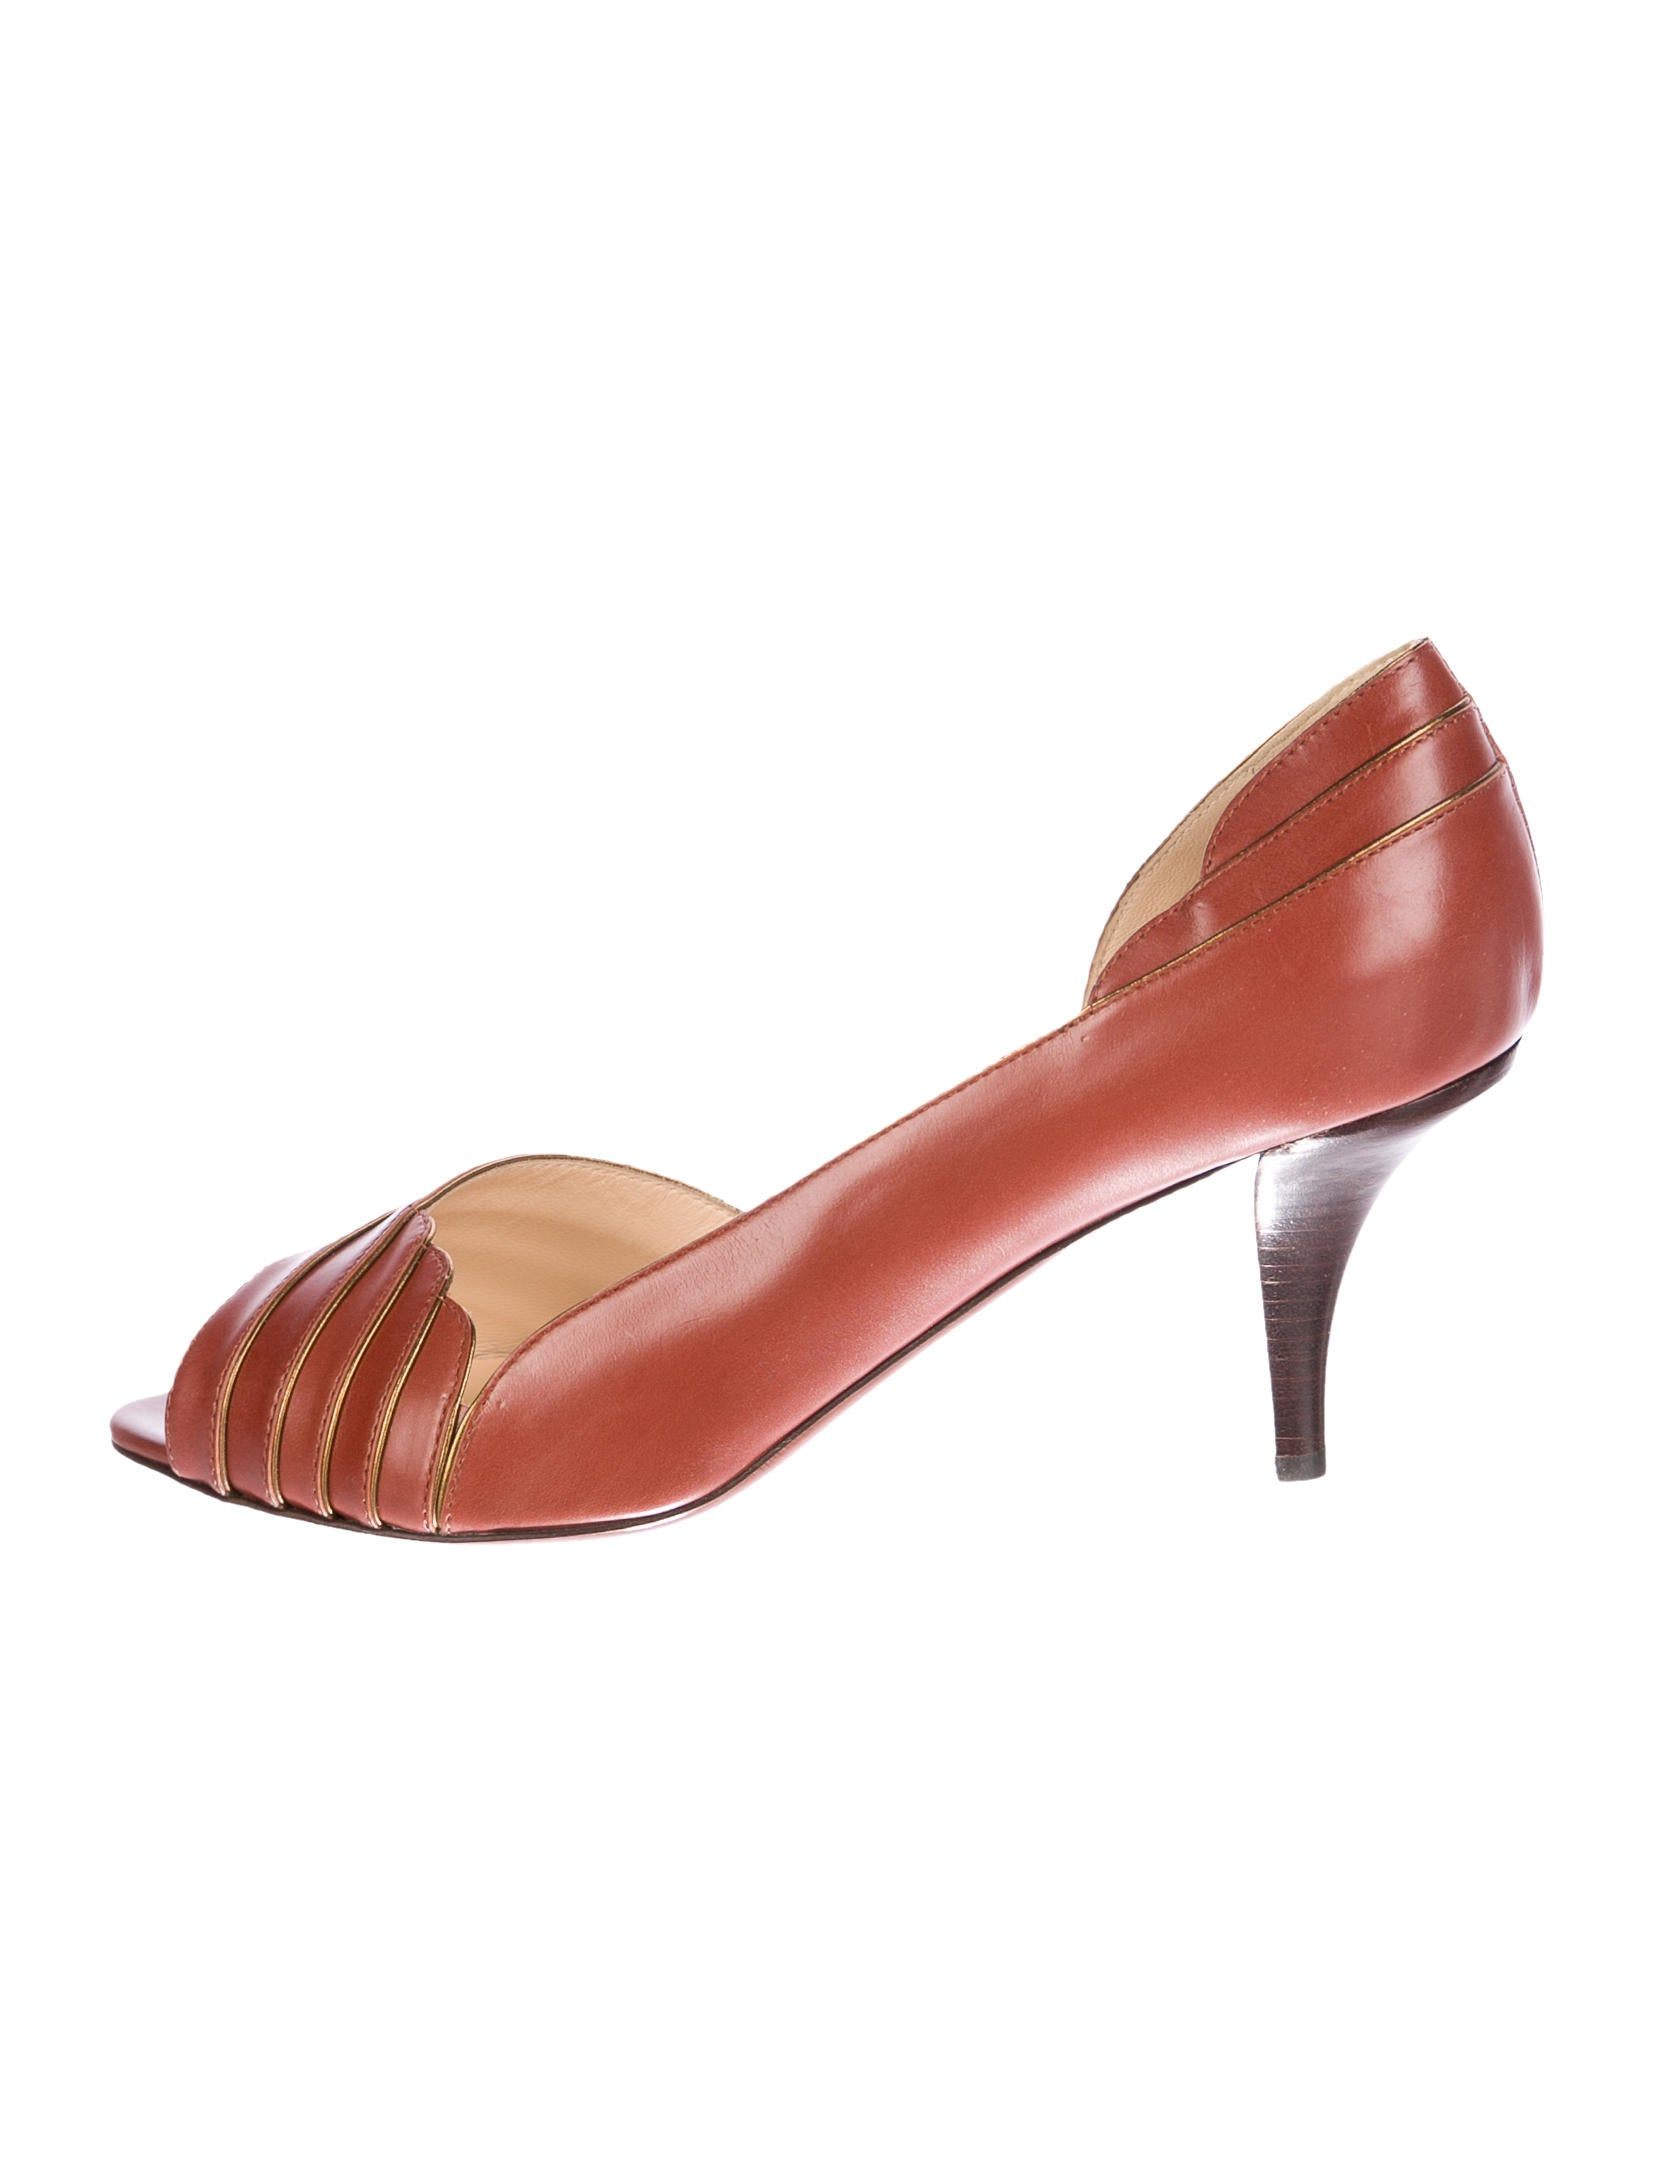 O Jour Leather Pointed-Toe Pumps cheap sale new excellent for sale clearance many kinds of best store to get sale online outlet 2014 newest Udqekr6C